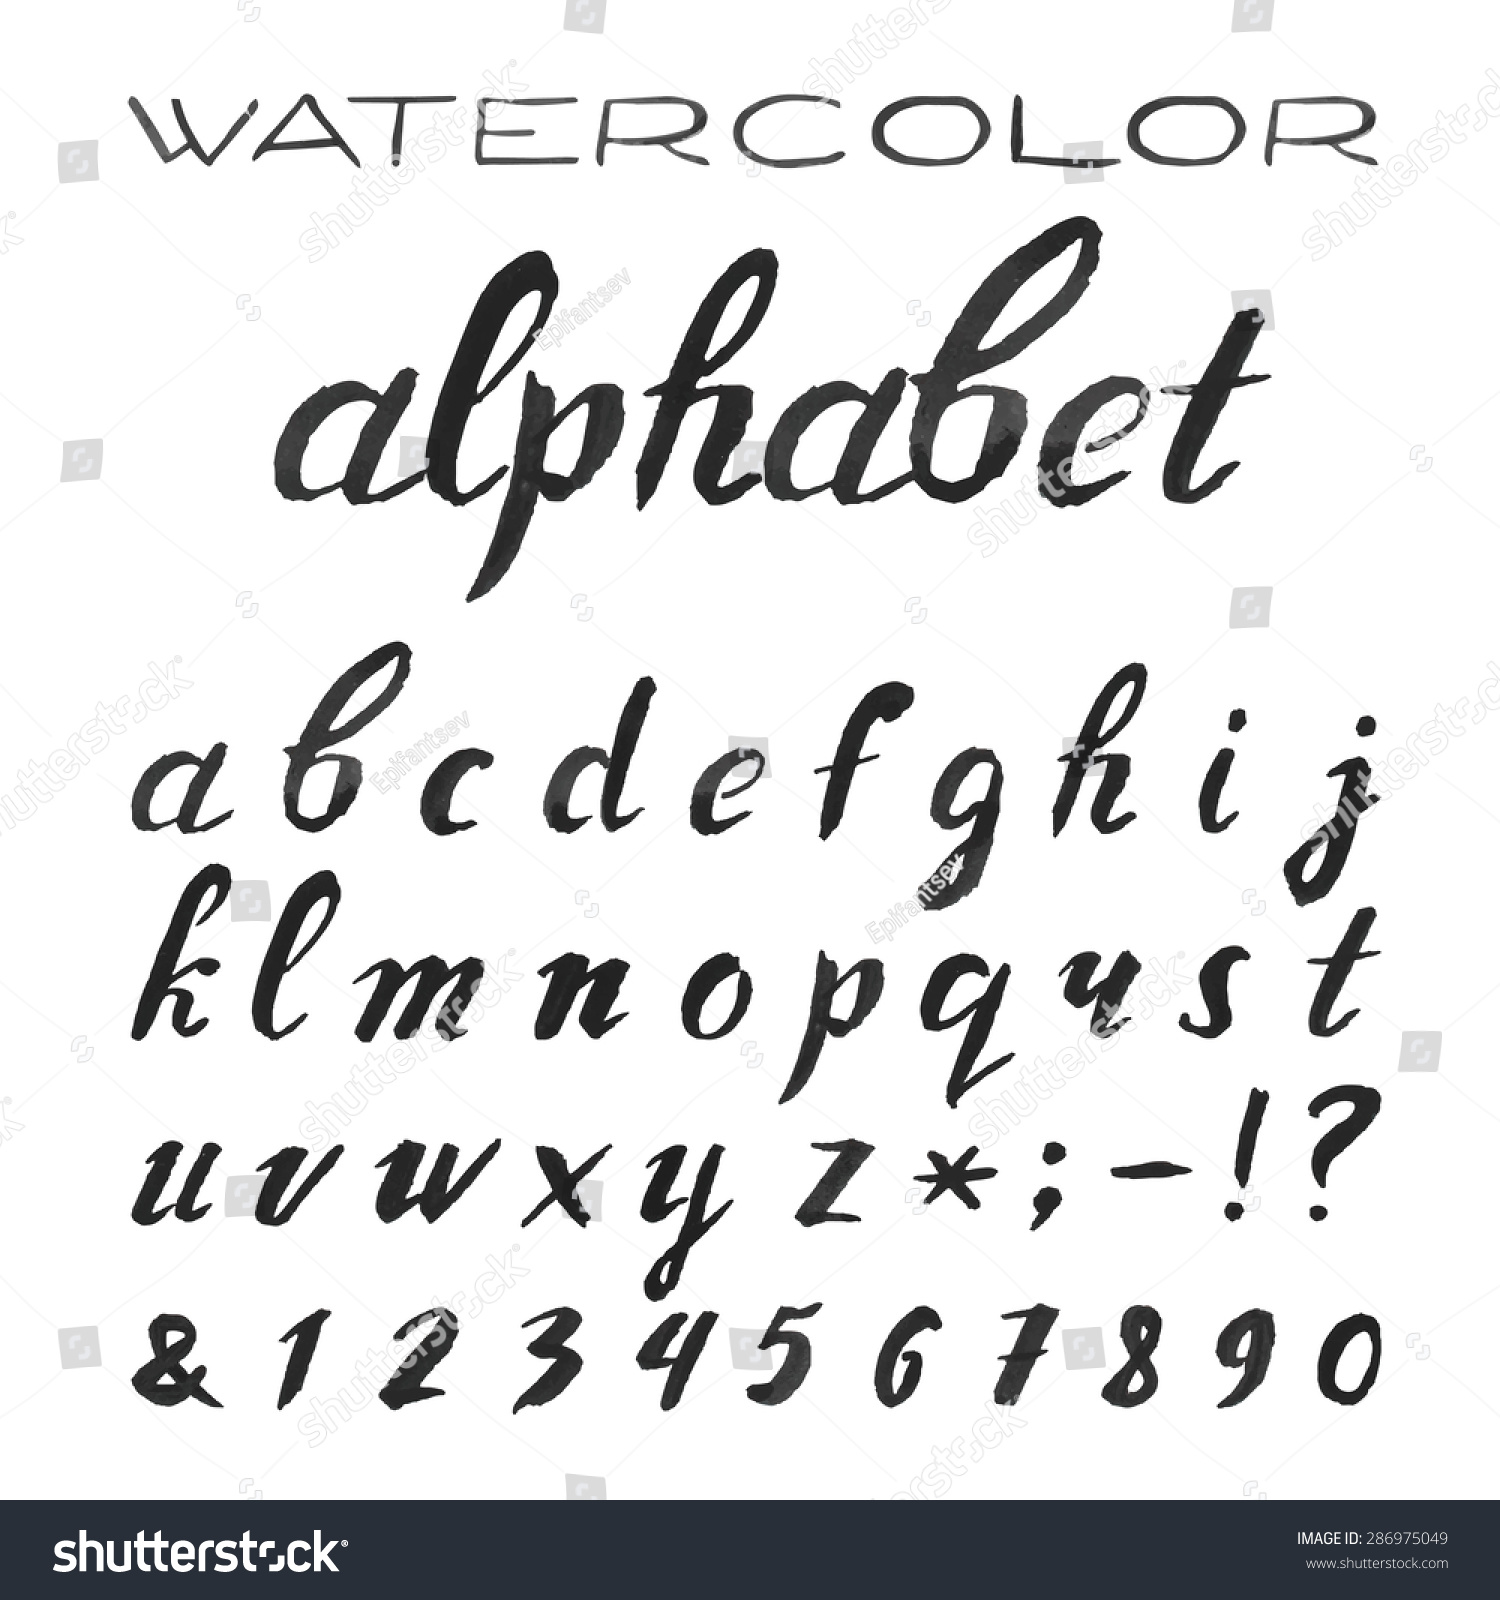 Worksheet Curisive Letters watercolor alphabet painted vector font handpainted black stock hand cursive letters on the